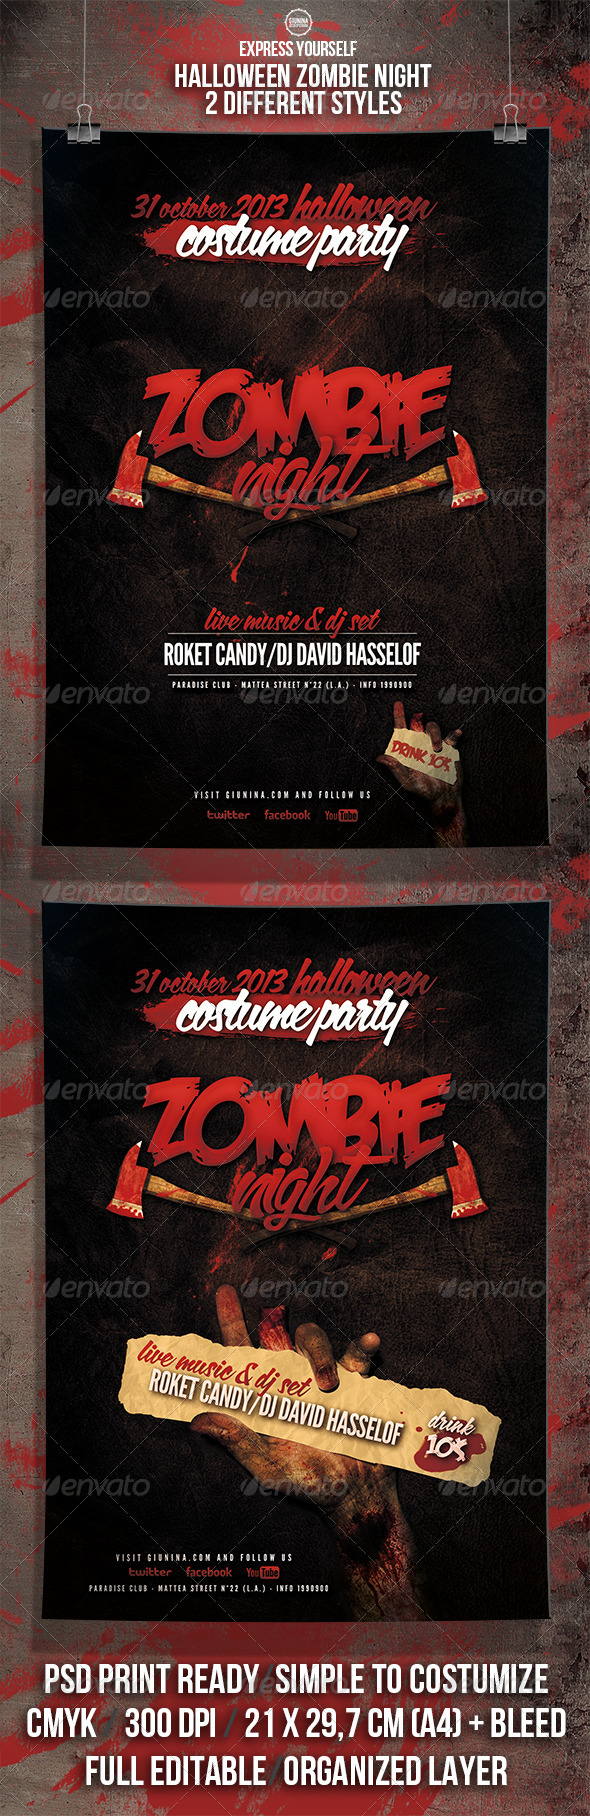 Halloween Zombie Night Flyer/Poster - Events Flyers